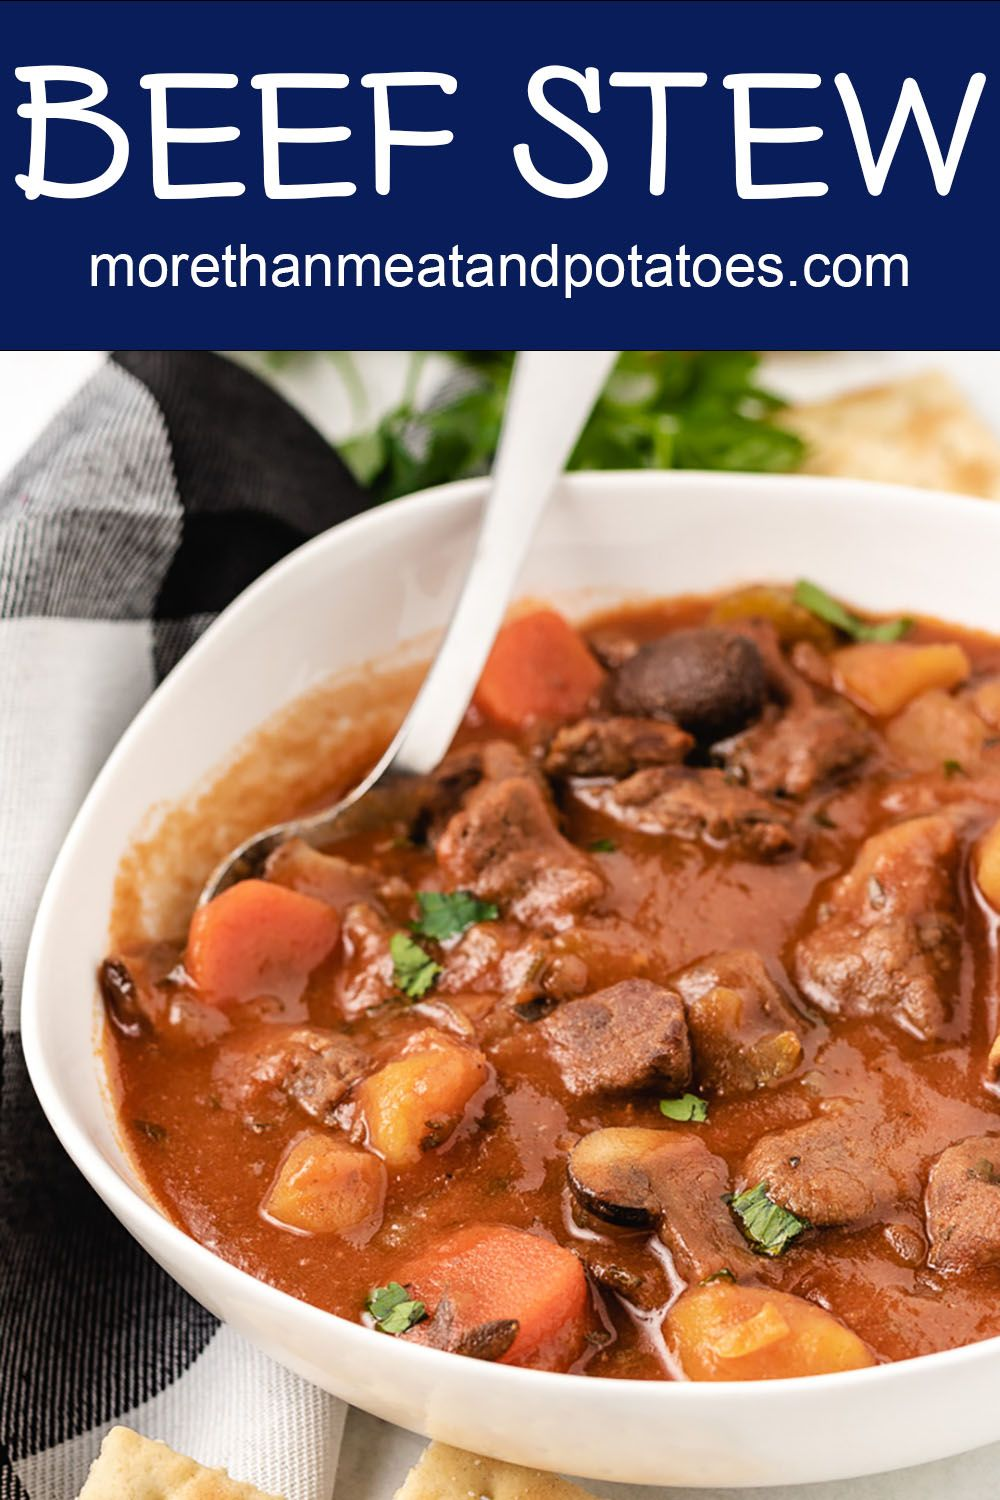 Beef Stew With Tomato Sauce Recipe Chicken And Beef Recipe Beef Stew Tomato Sauce Tomato Beef Stew